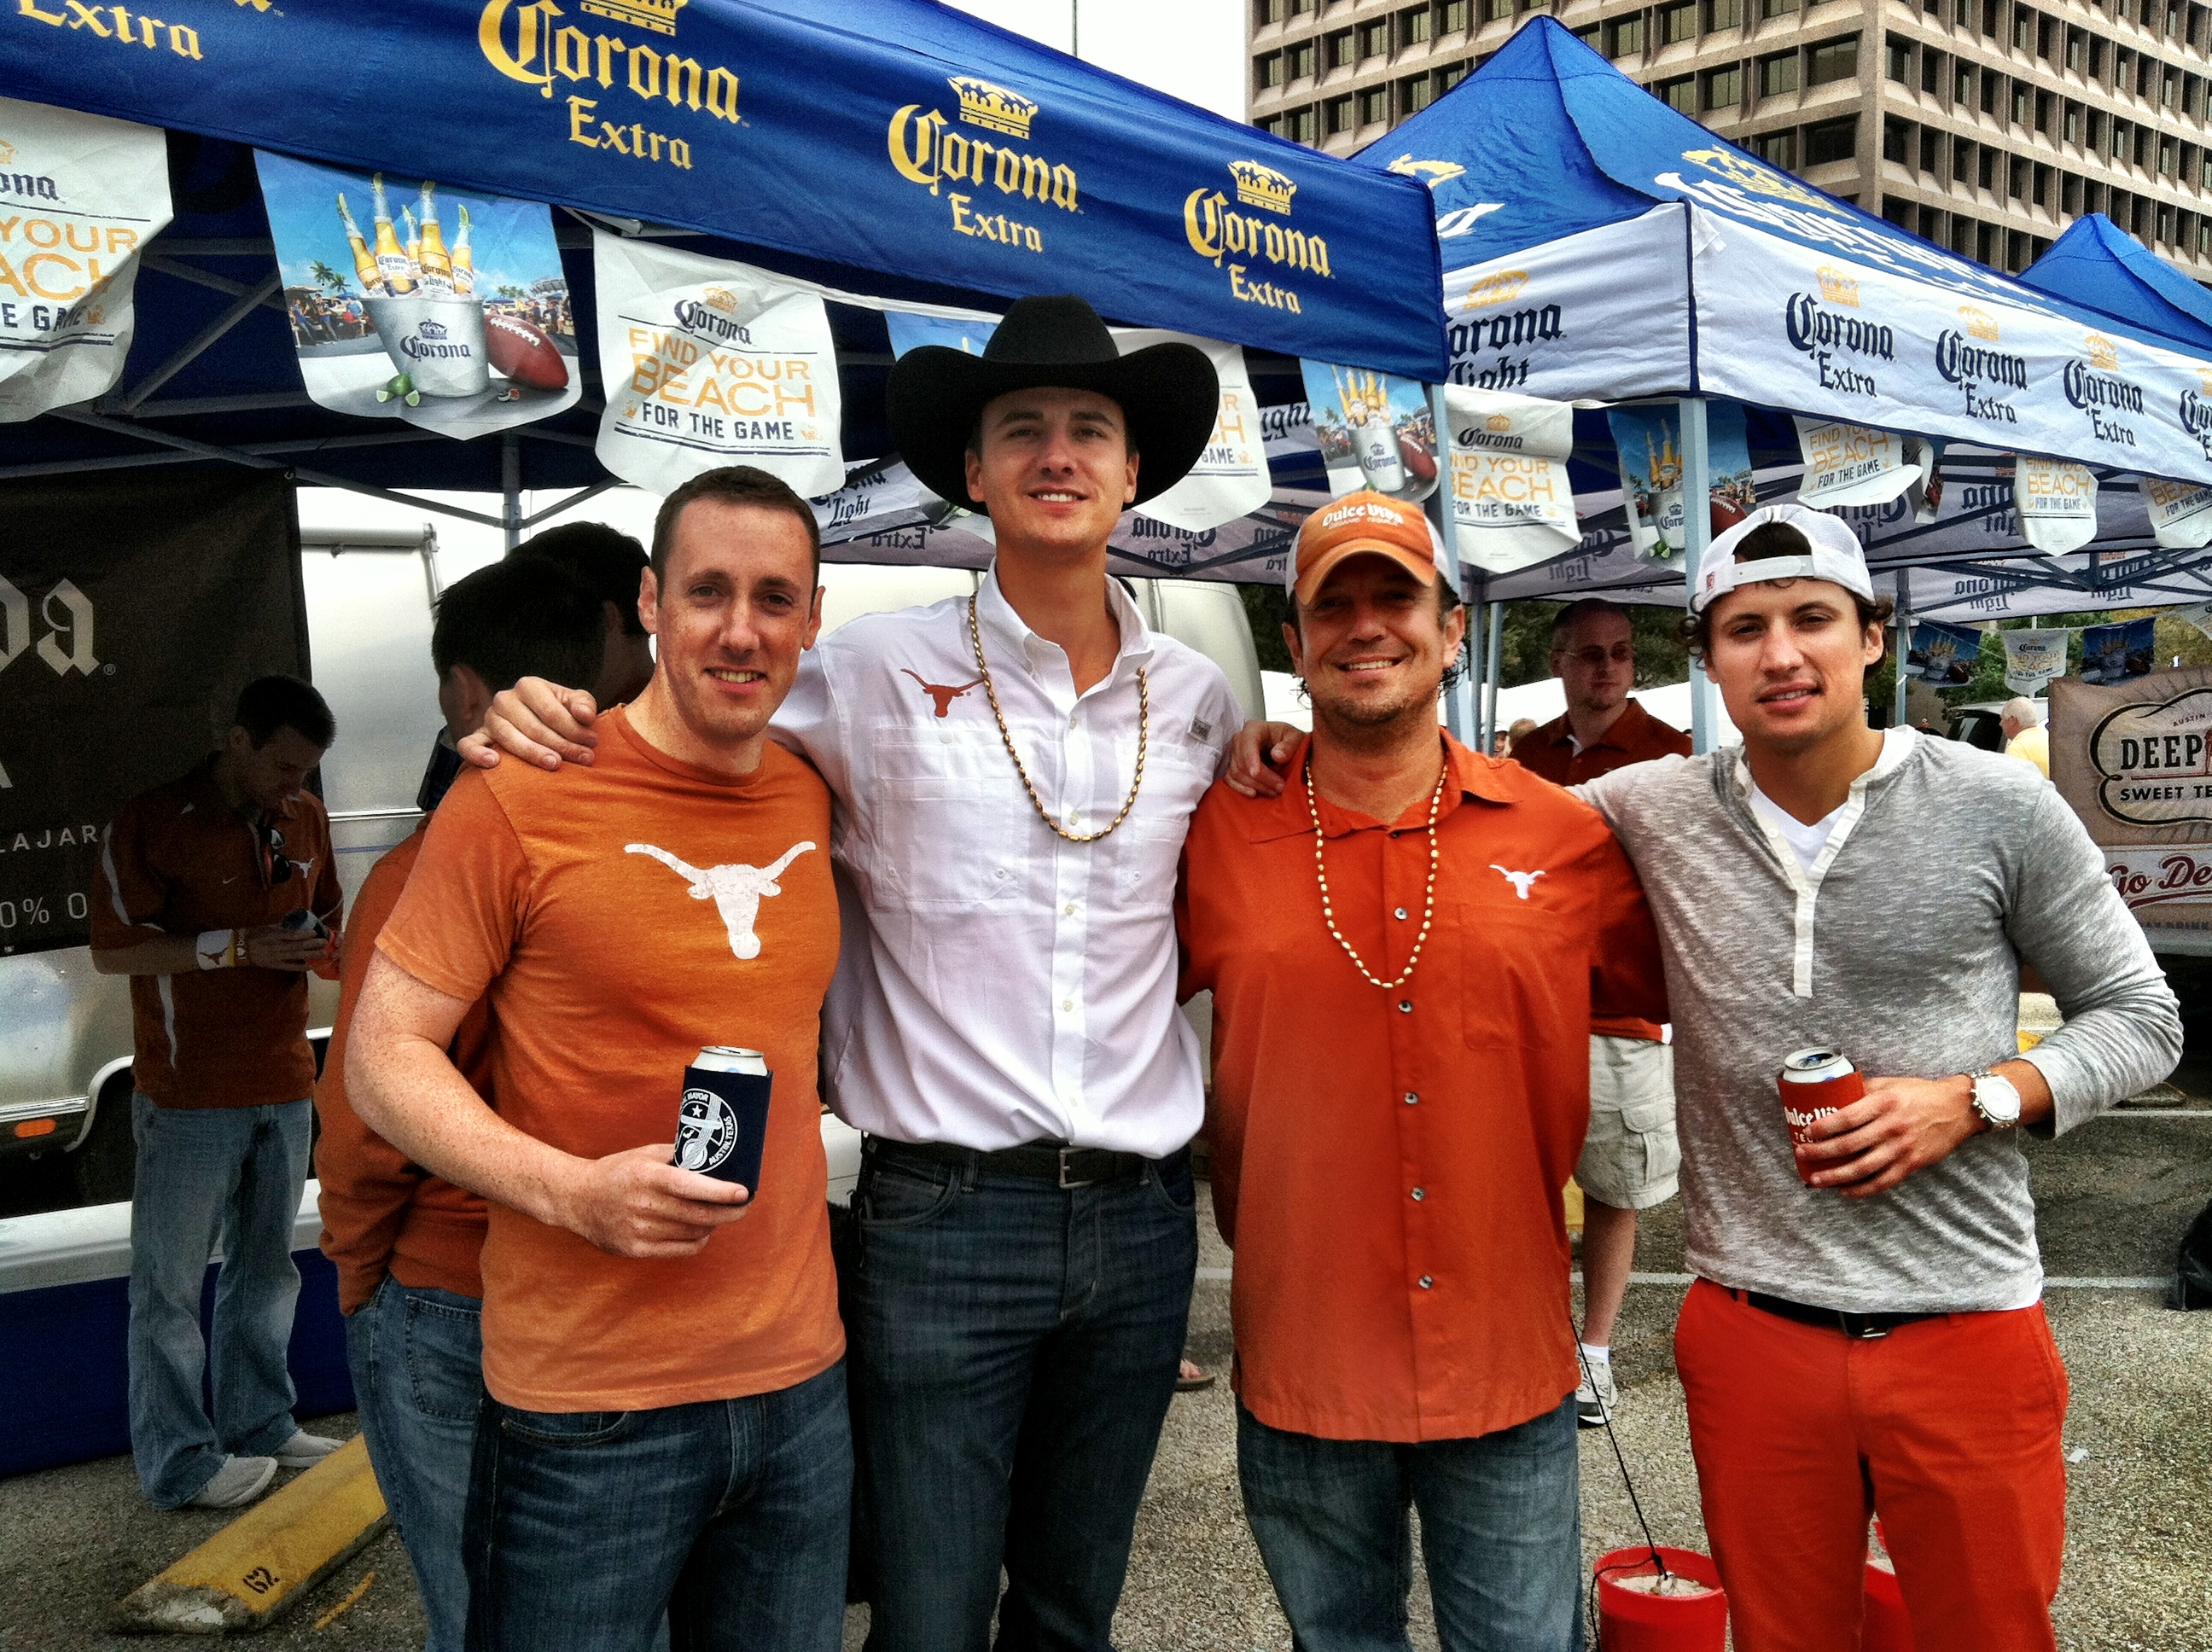 College football fans tailgate